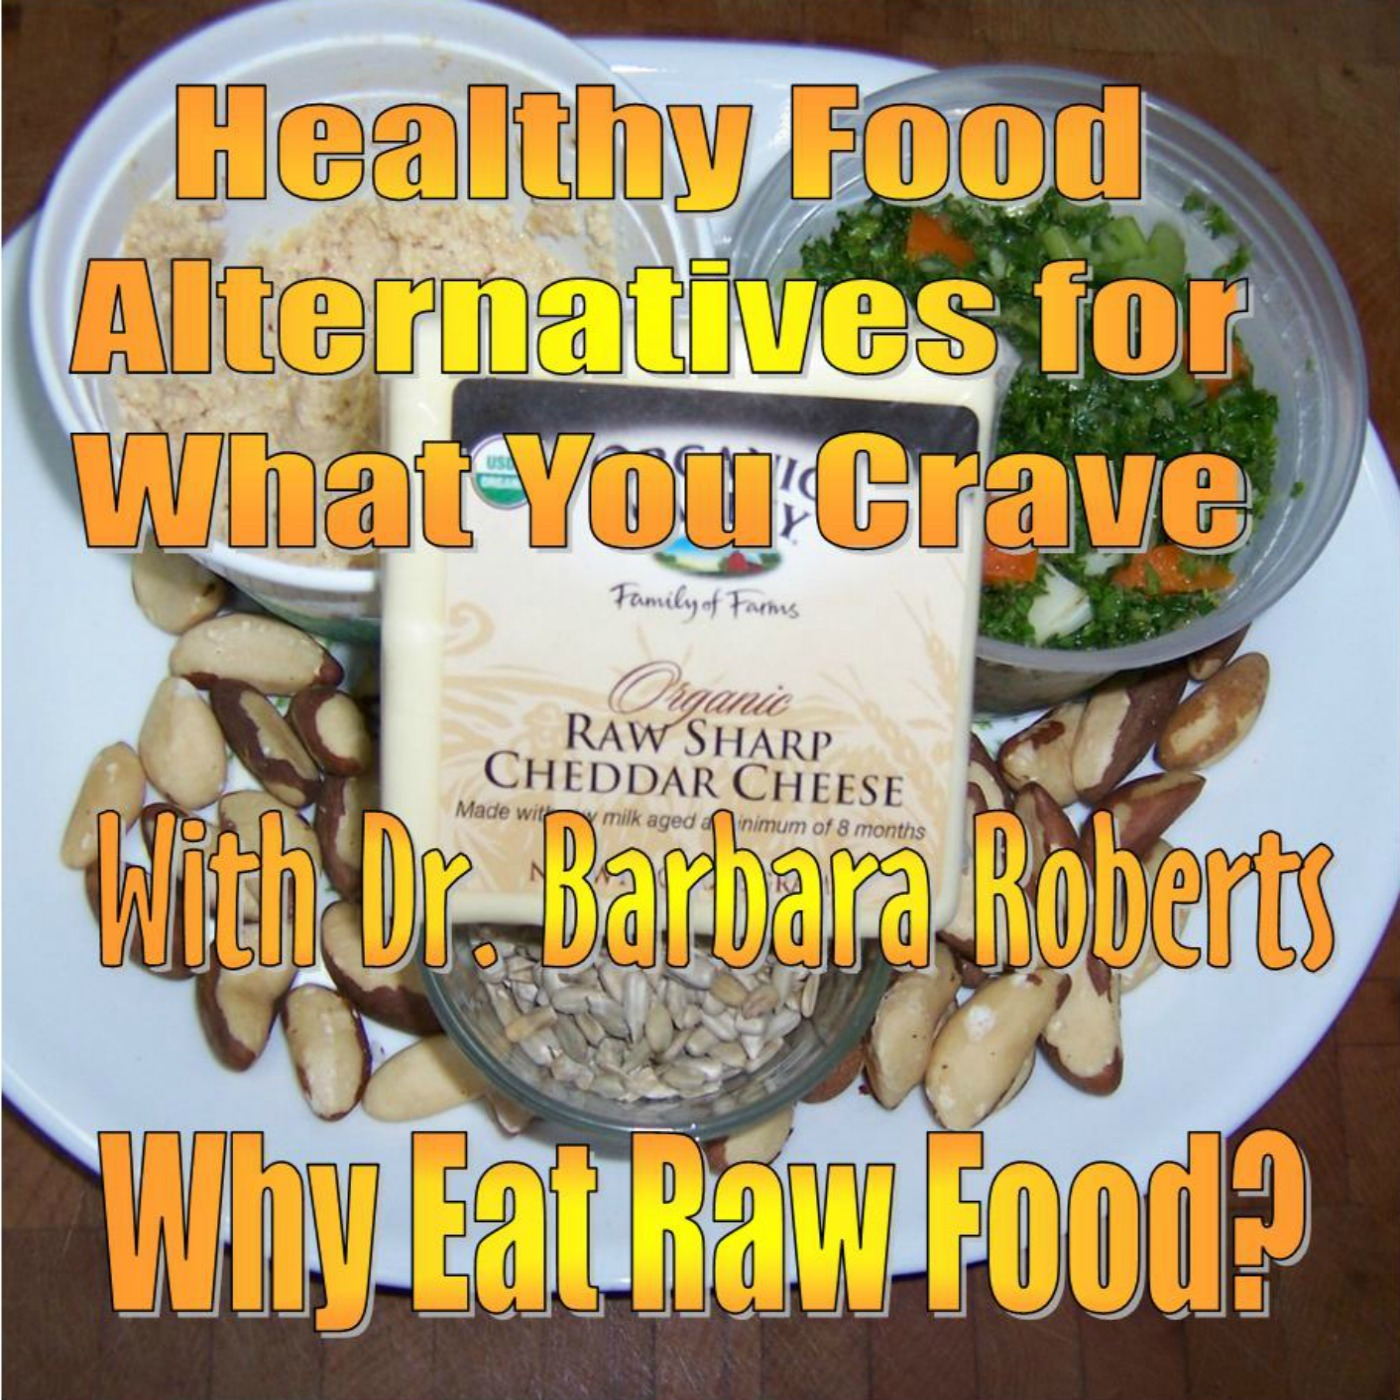 Video 5 - Why Eat Raw Food? - Healthy Food Alternatives For